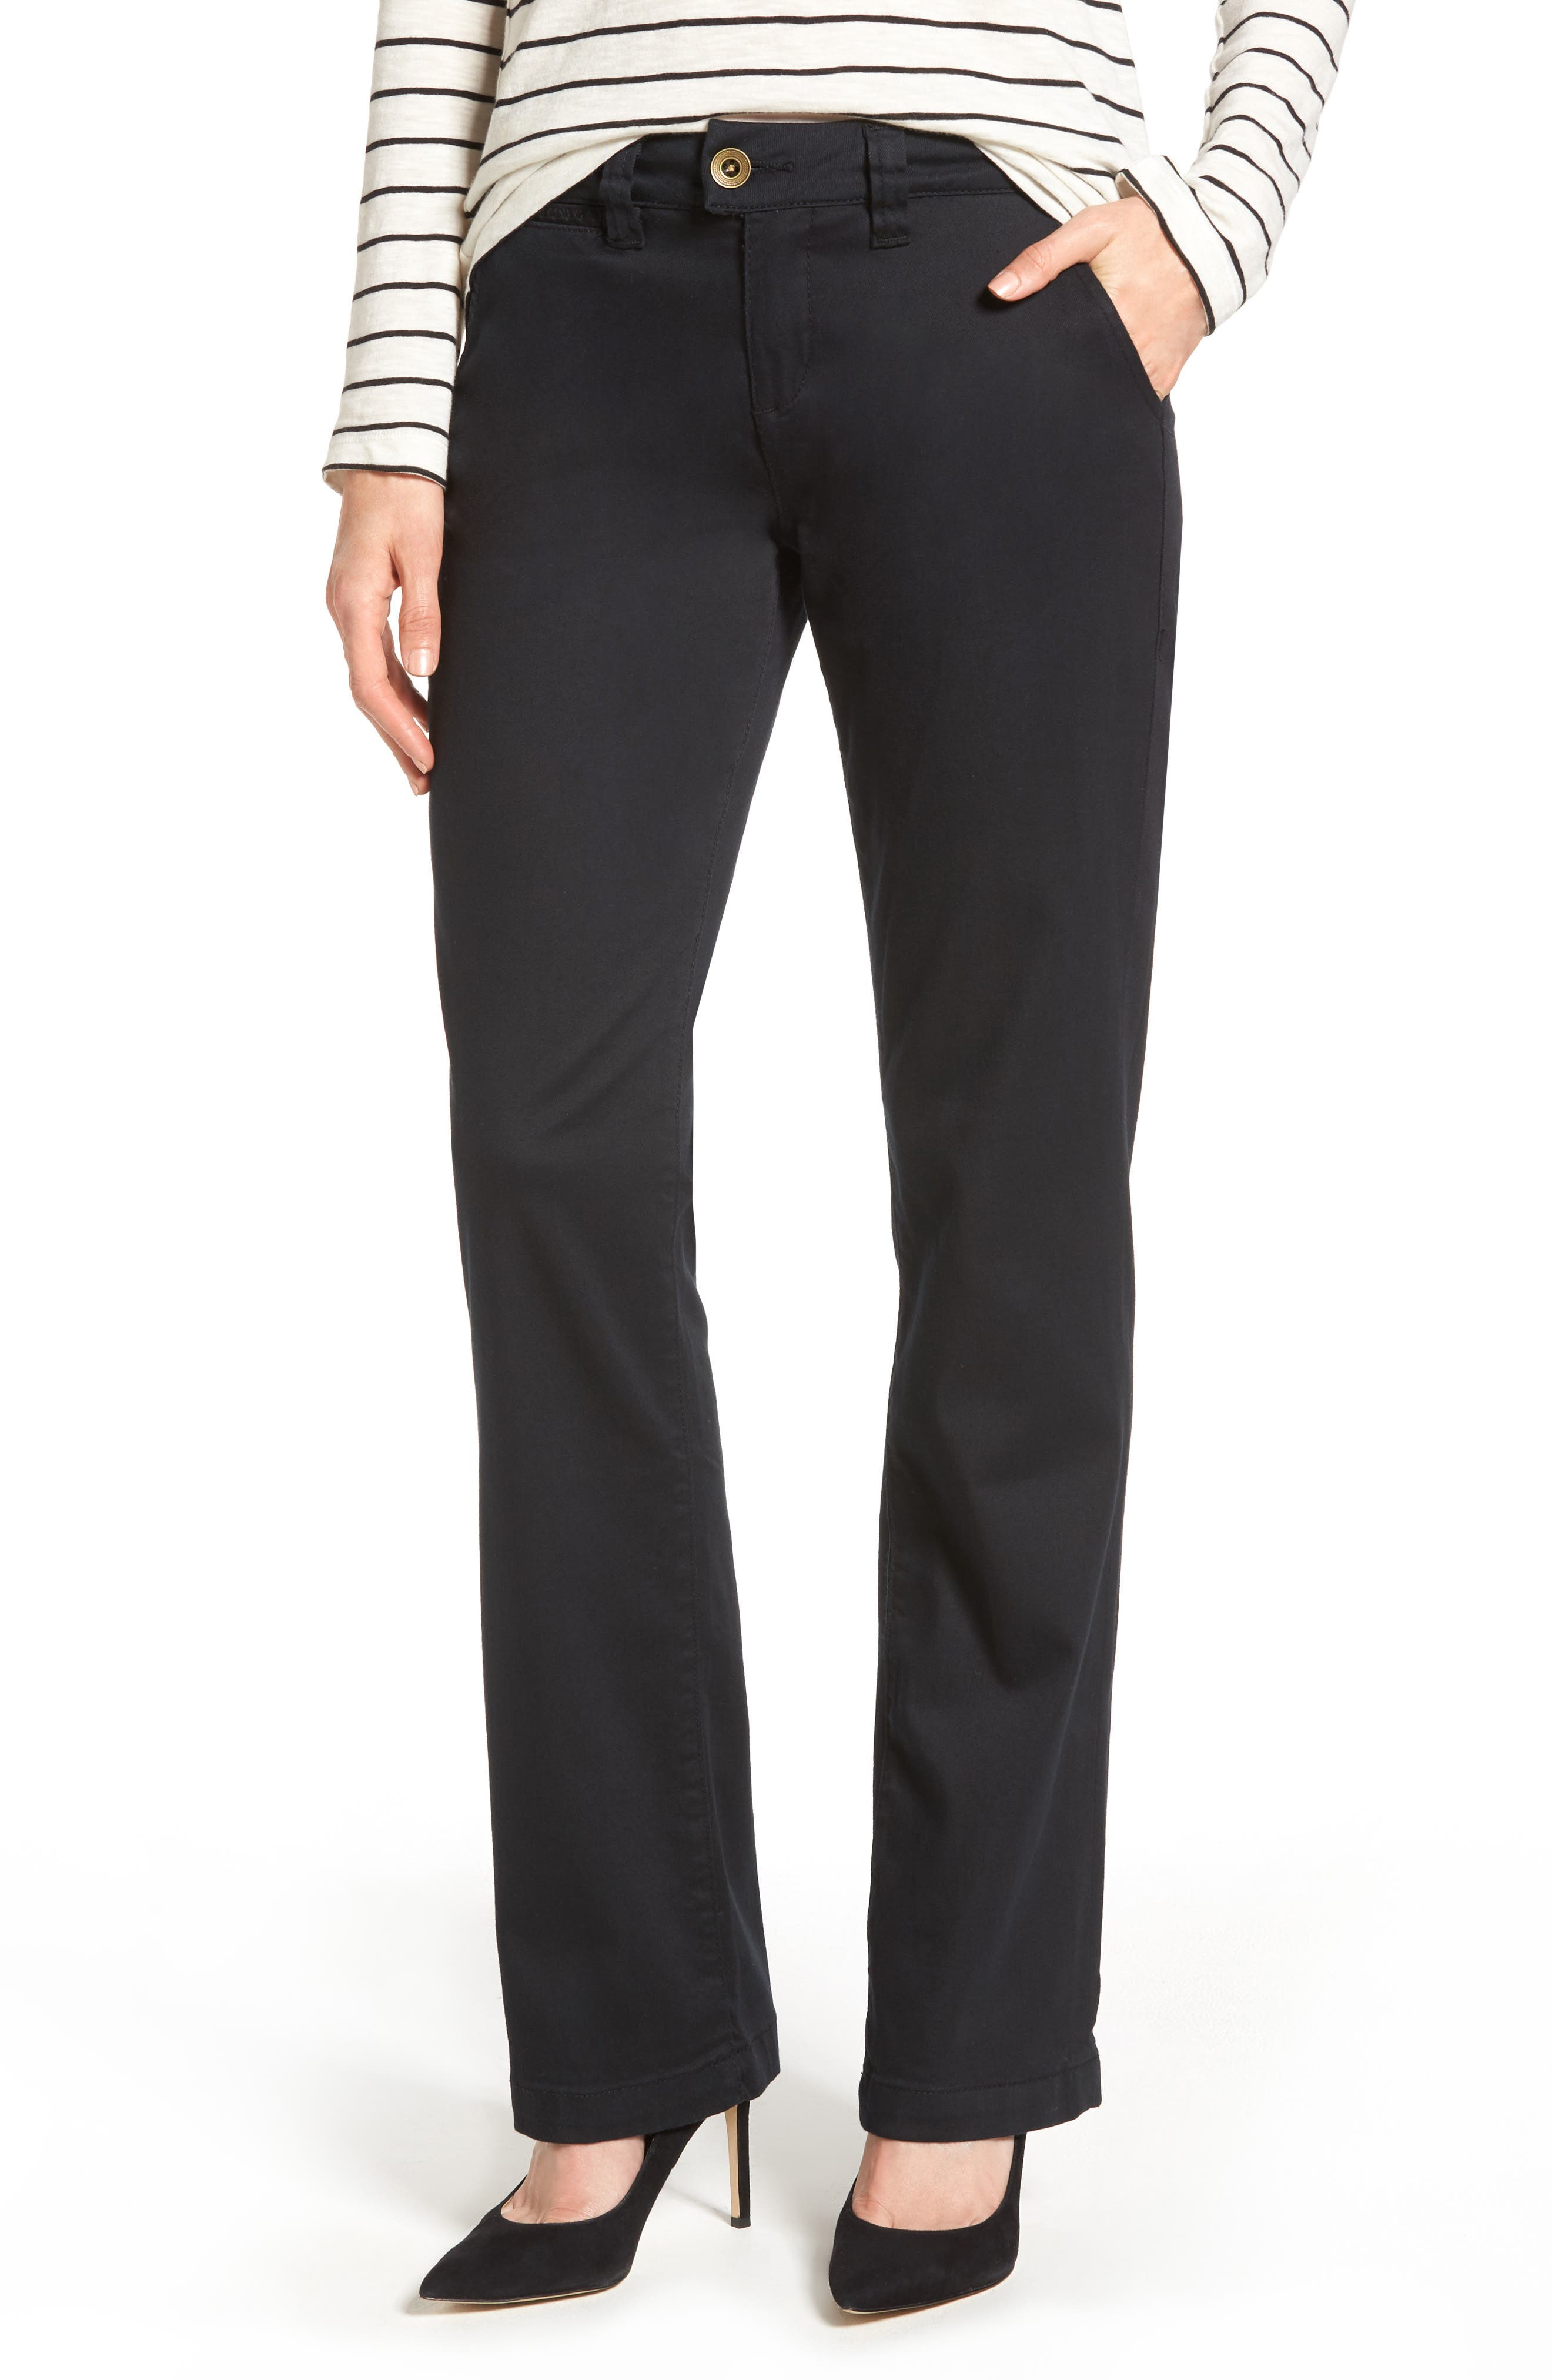 Alternate Image 1 Selected - Jag Jeans Standard Stretch Twill Trousers (Regular & Petite)